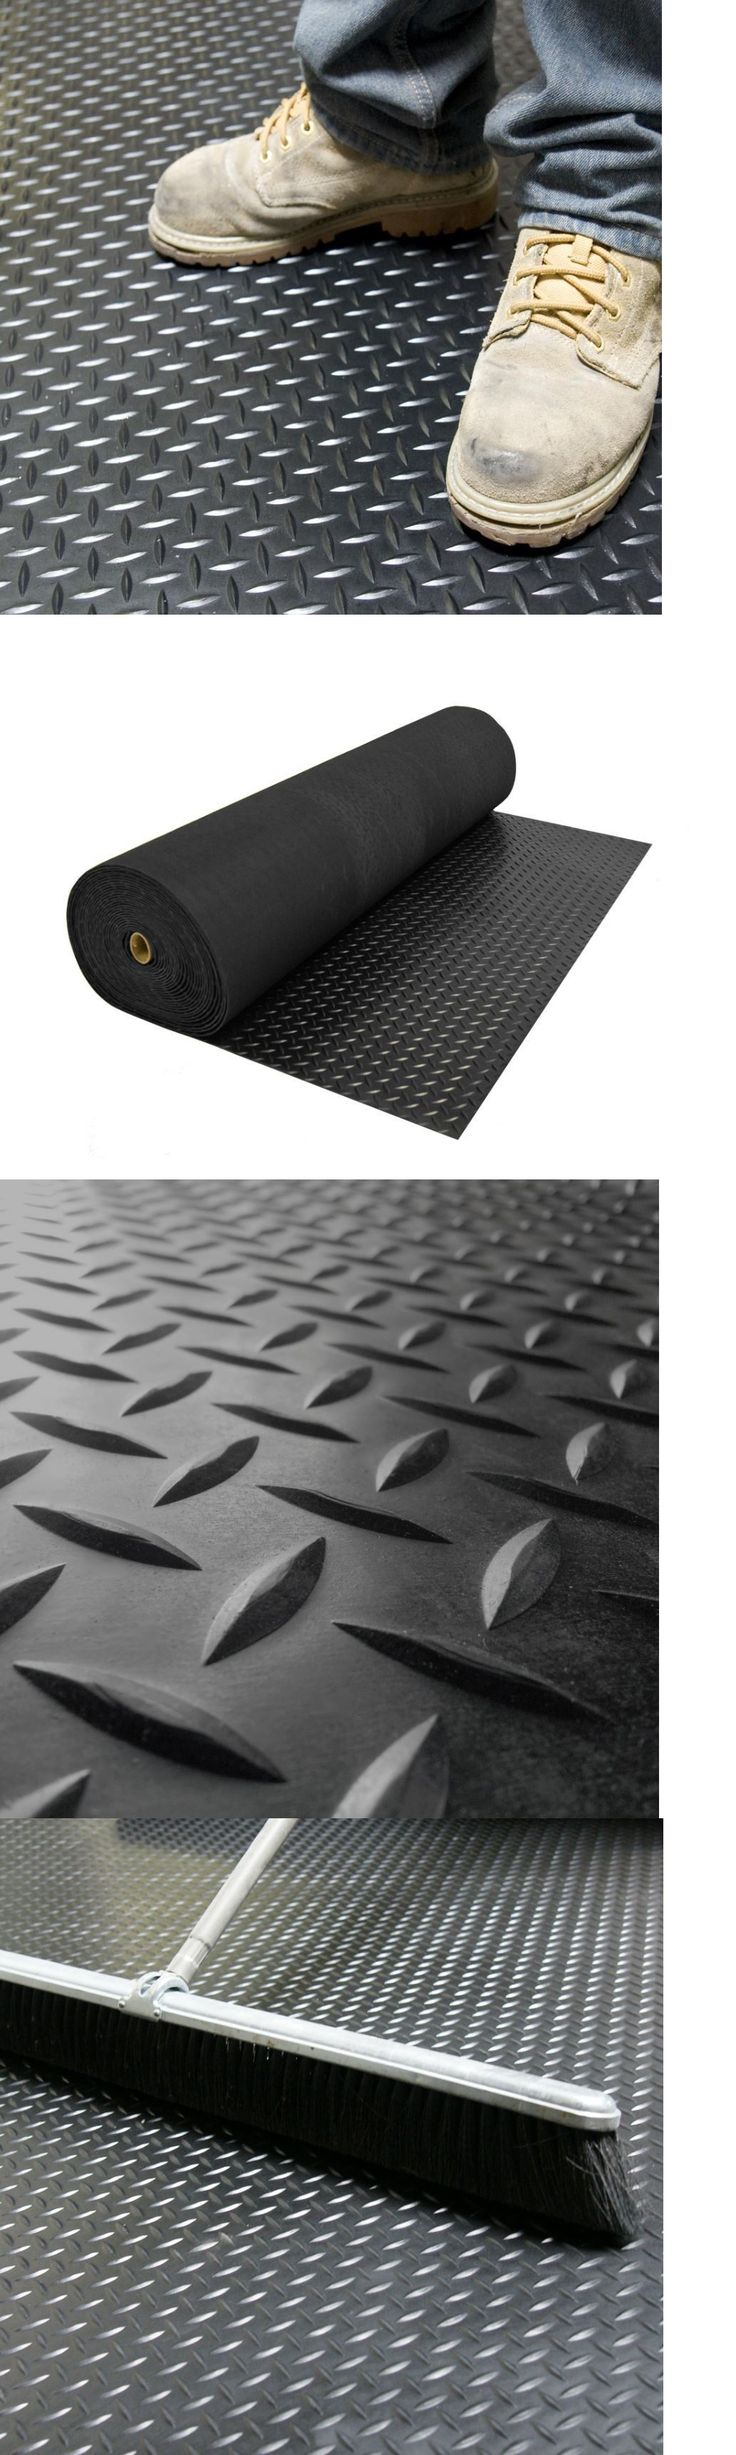 Rubber Mats For Kitchen Floor 17 Best Ideas About Rubber Flooring On Pinterest Rubber Tiles